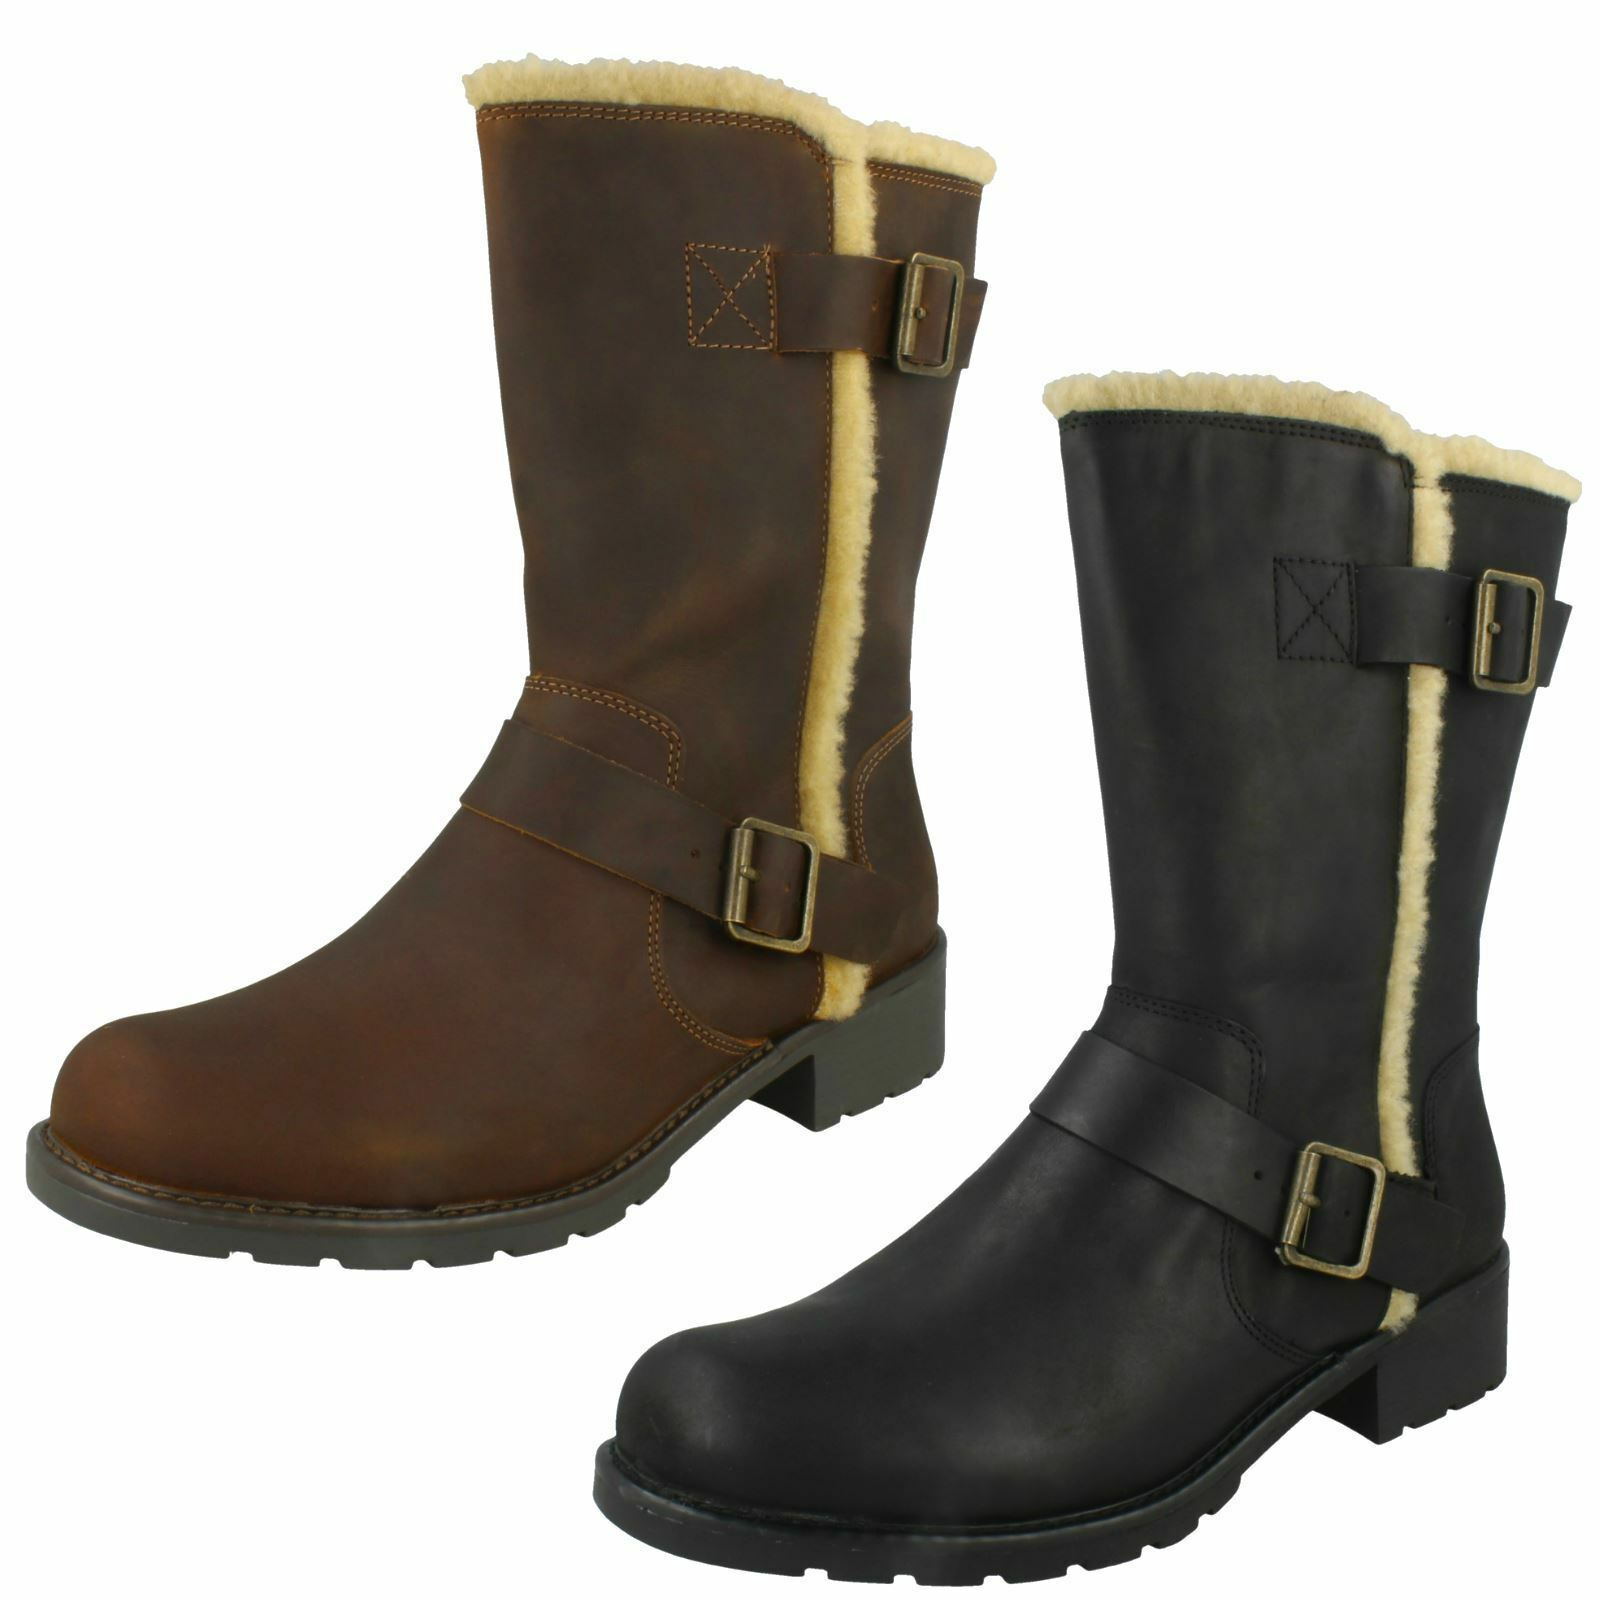 Grandes zapatos con descuento Ladies Clarks Orinoco Art Black Or Beeswax Brown Leather Casual Mid Calf Boots